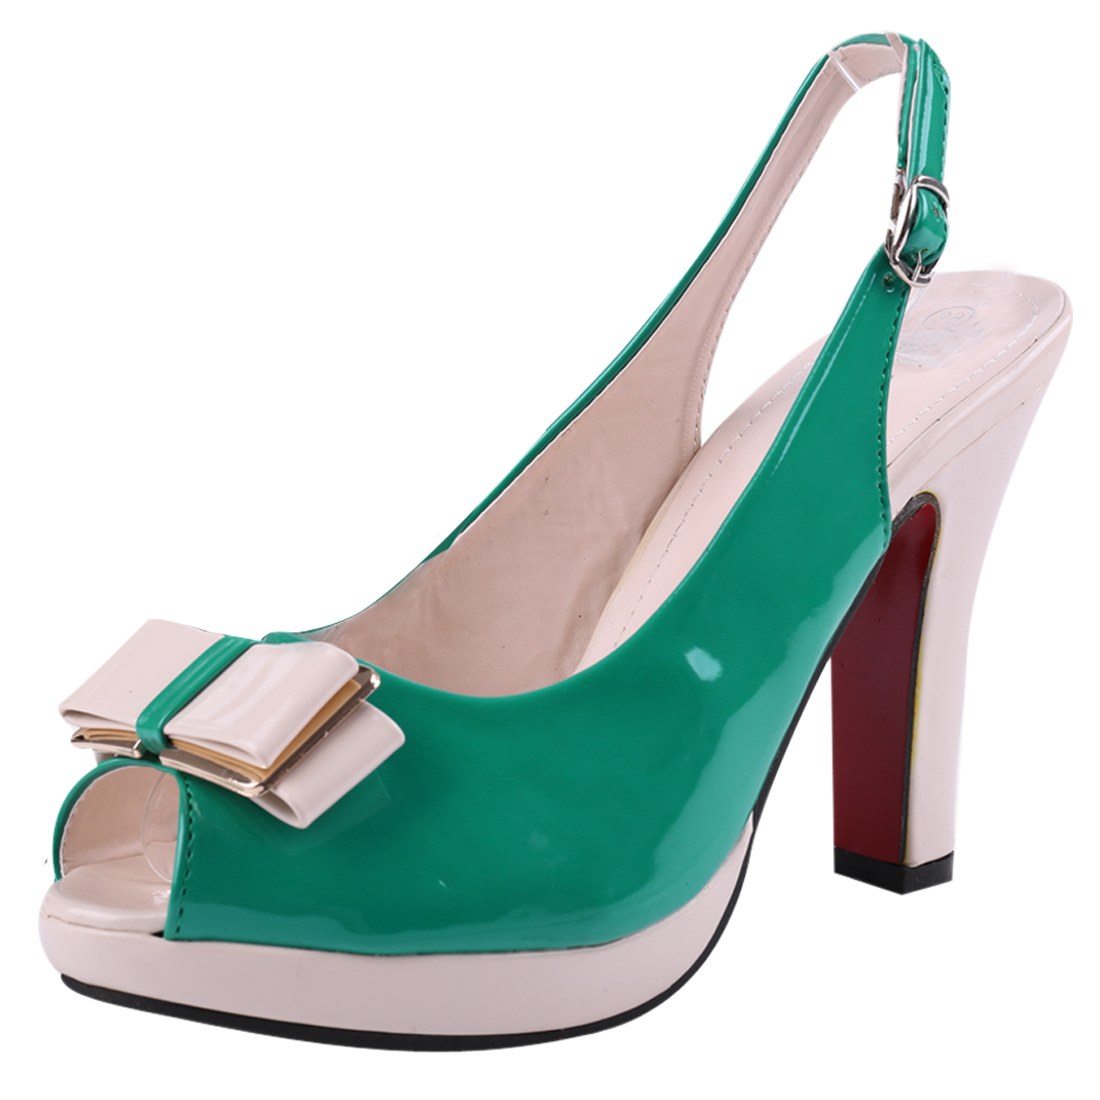 Women Patent Bowknot Decor Platform Pumps Green Beige US 7